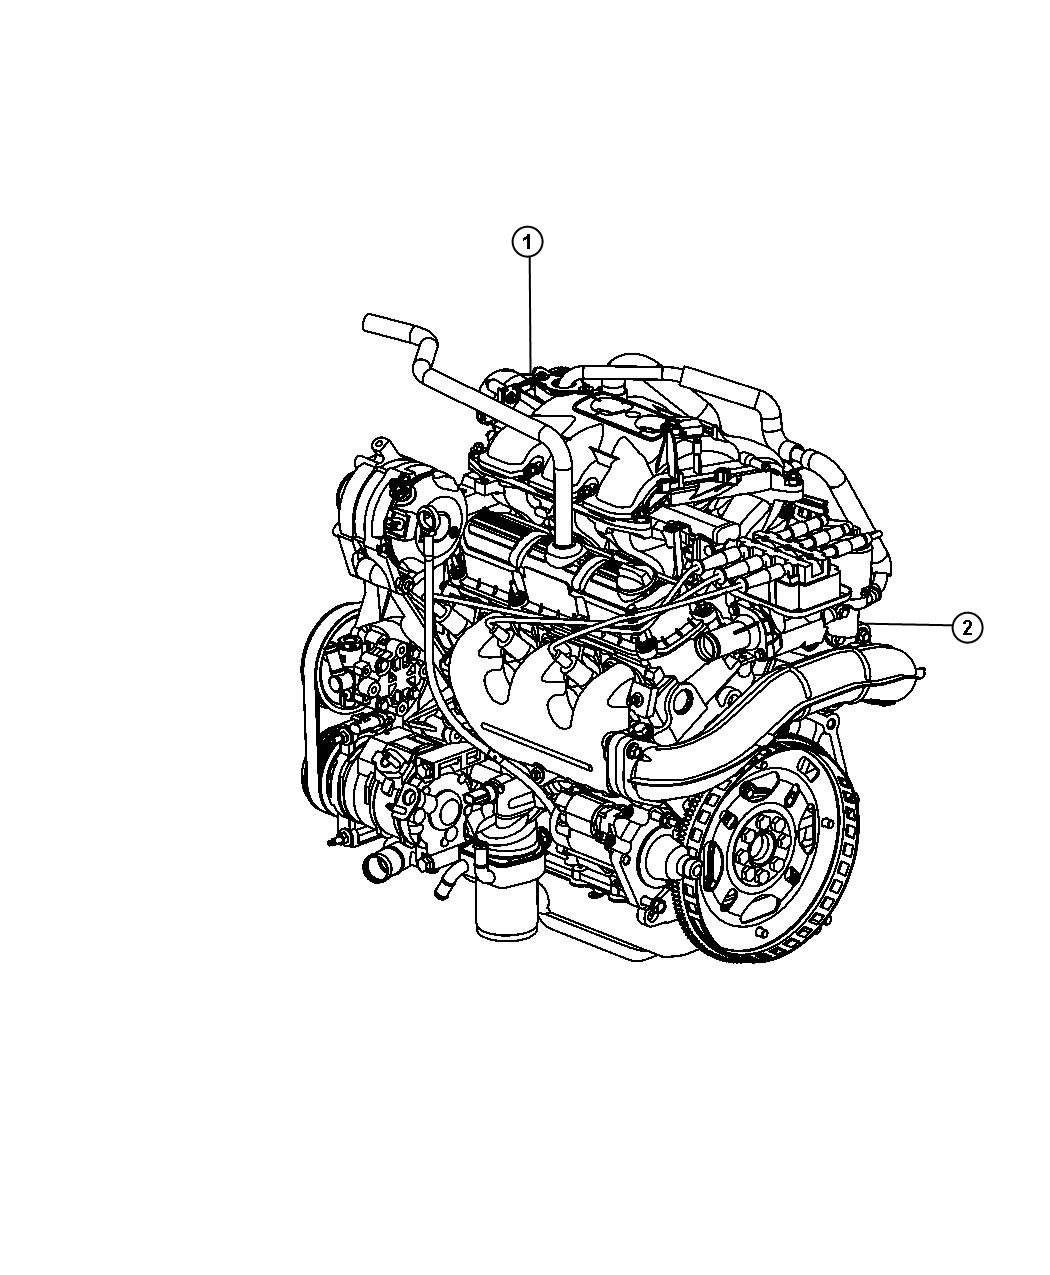 Jeep Wrangler Engine Long Block Remanufactured